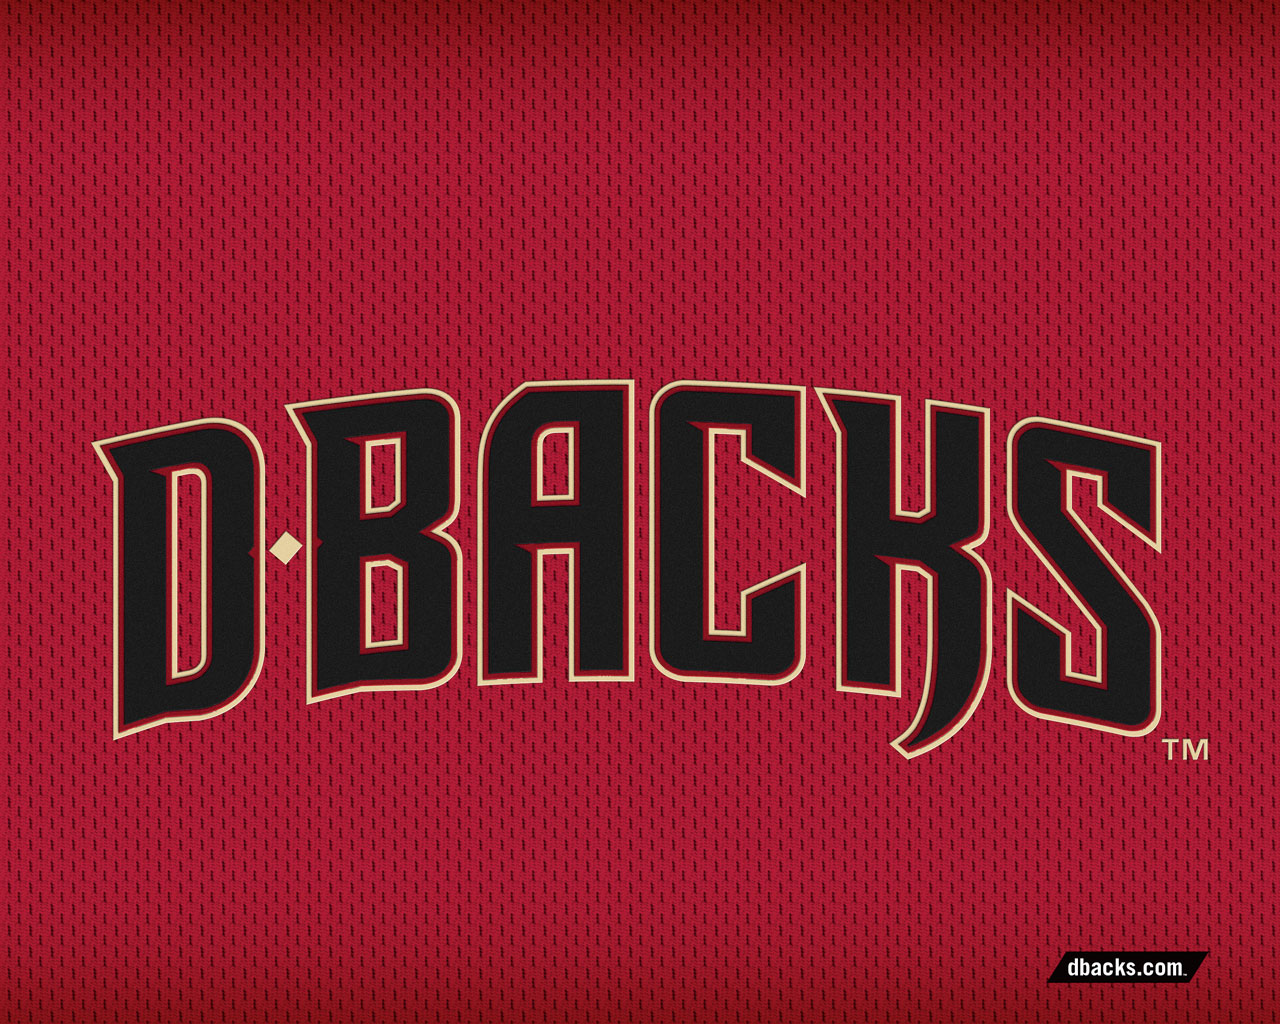 1280x1024 - Arizona Diamondbacks Wallpapers 10